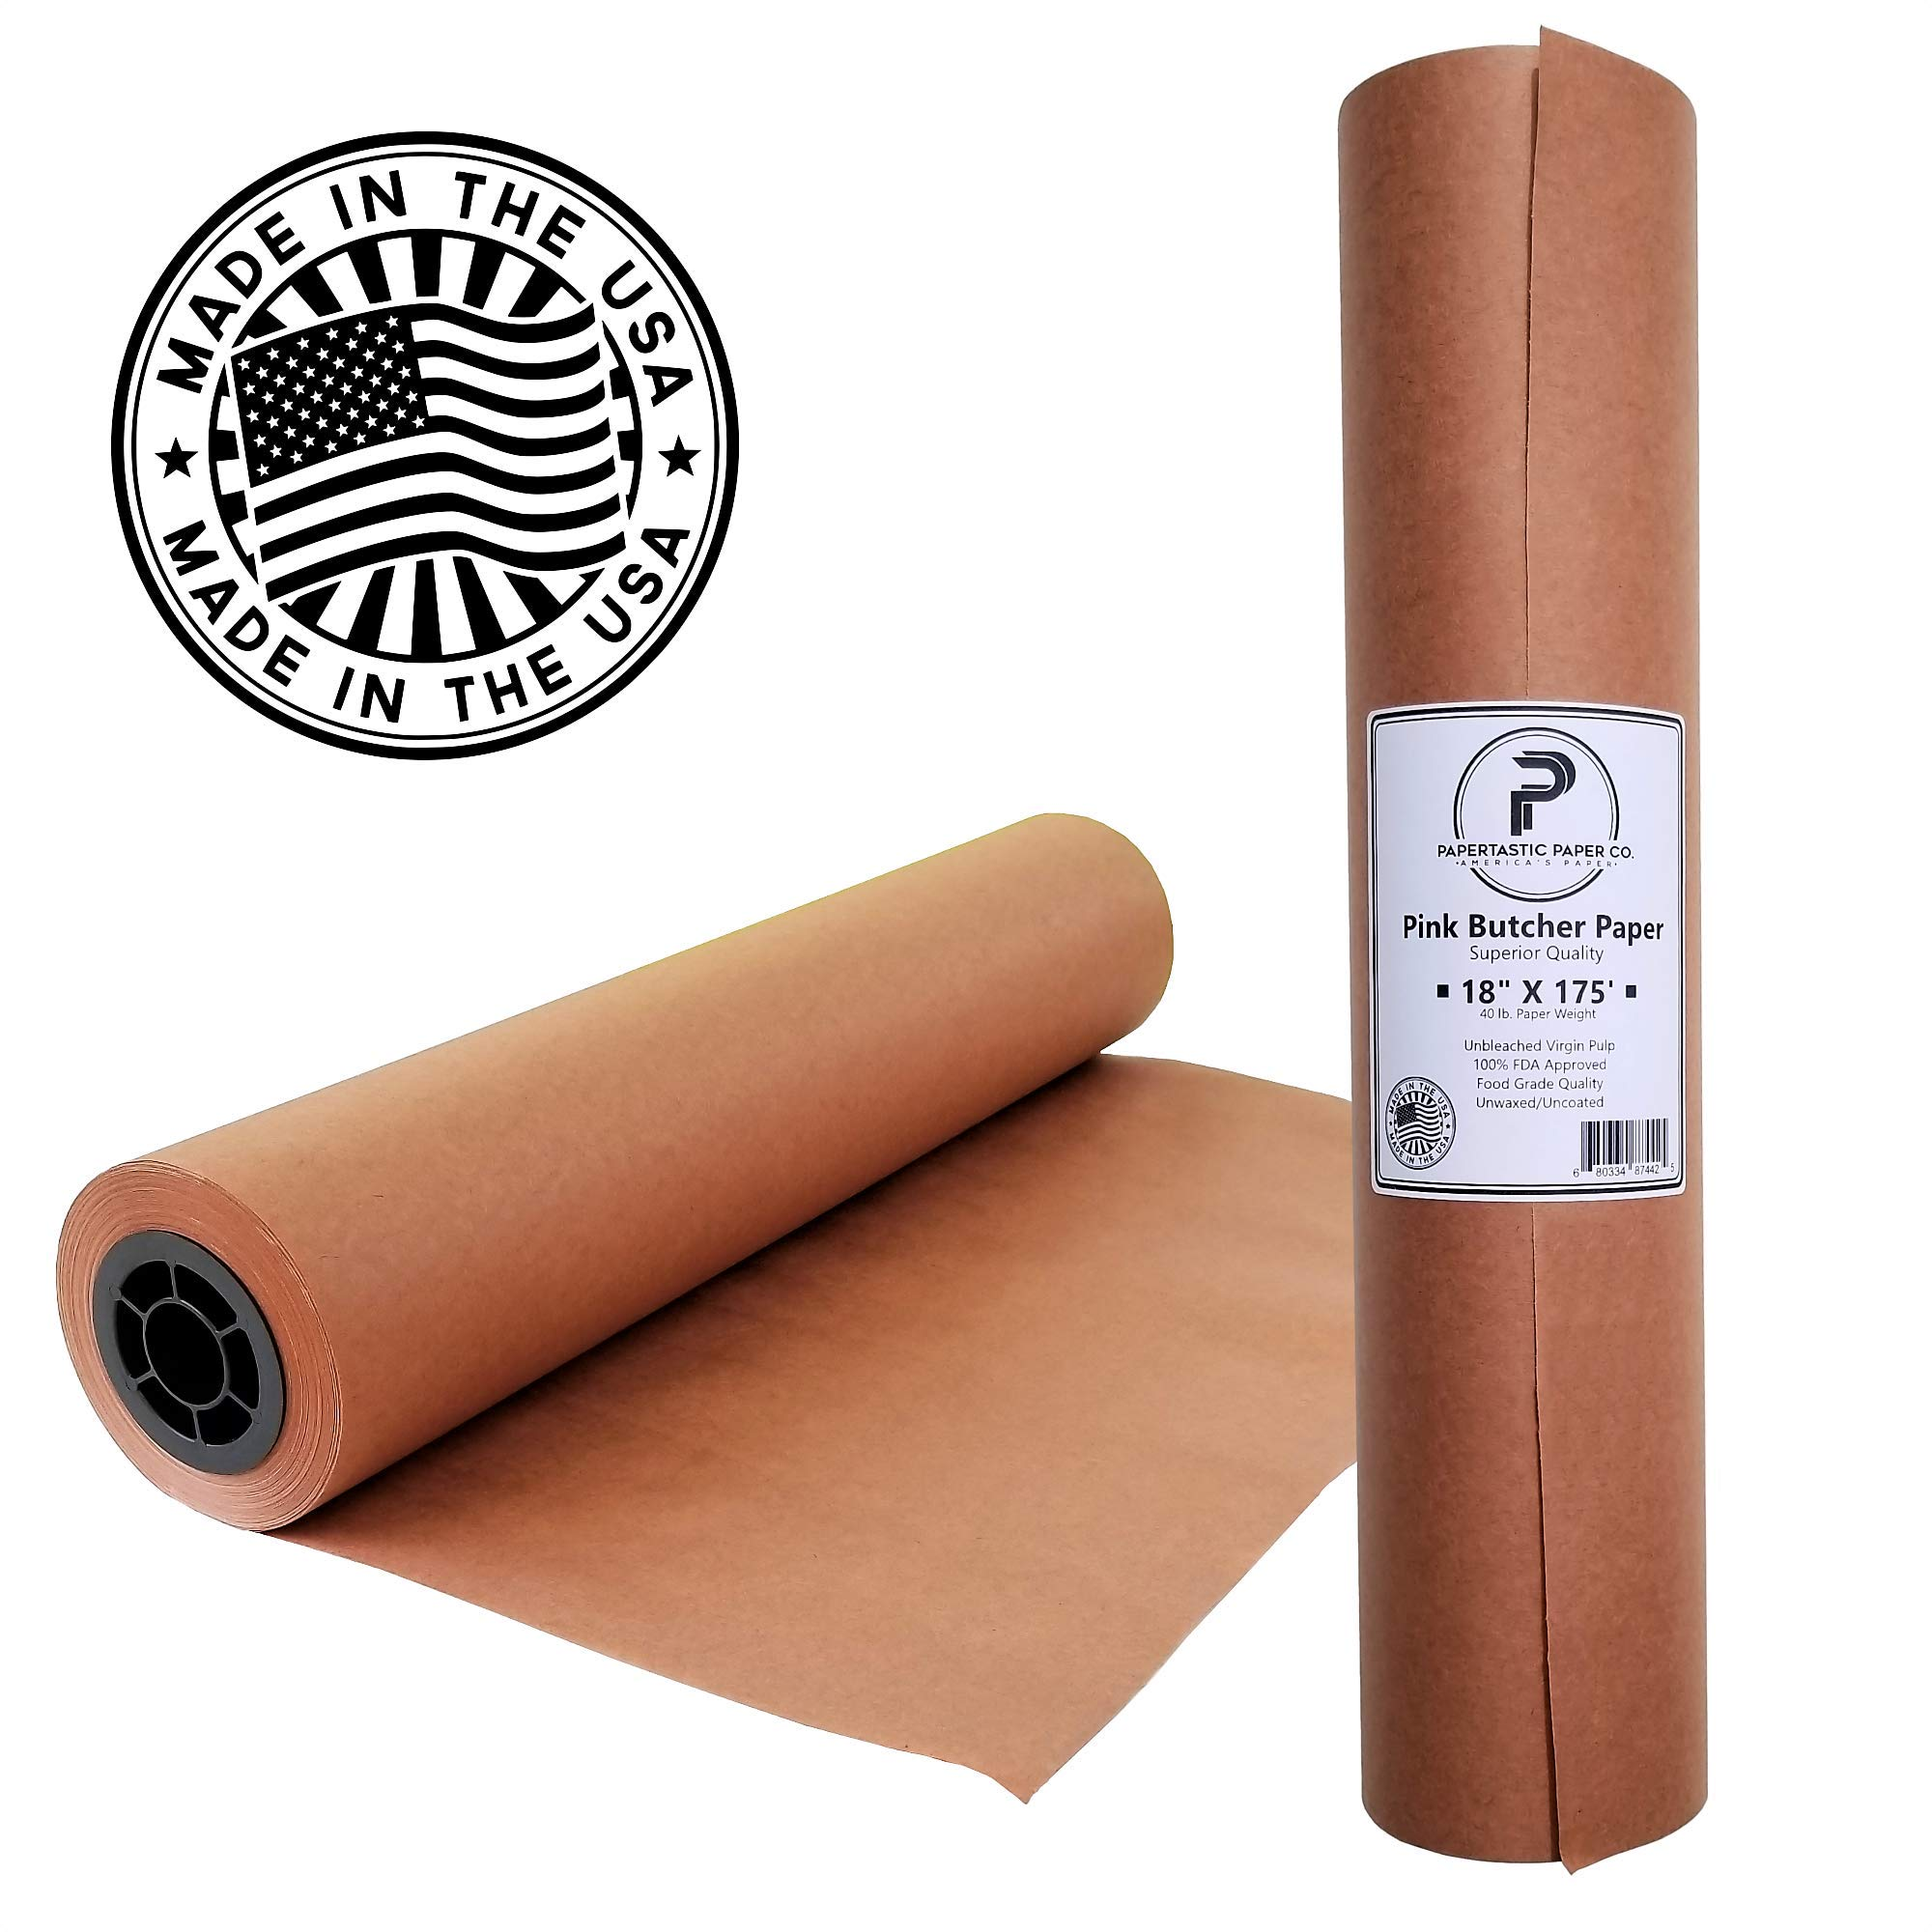 Pink Butcher Paper Roll 18'' x 2100'' (175ft)   Best Peach Wrapping Paper for Smoking Meat, Brisket, Crawfish Boil, or Table Runner   Made in USA   Unwaxed, Uncoated, Unbleached